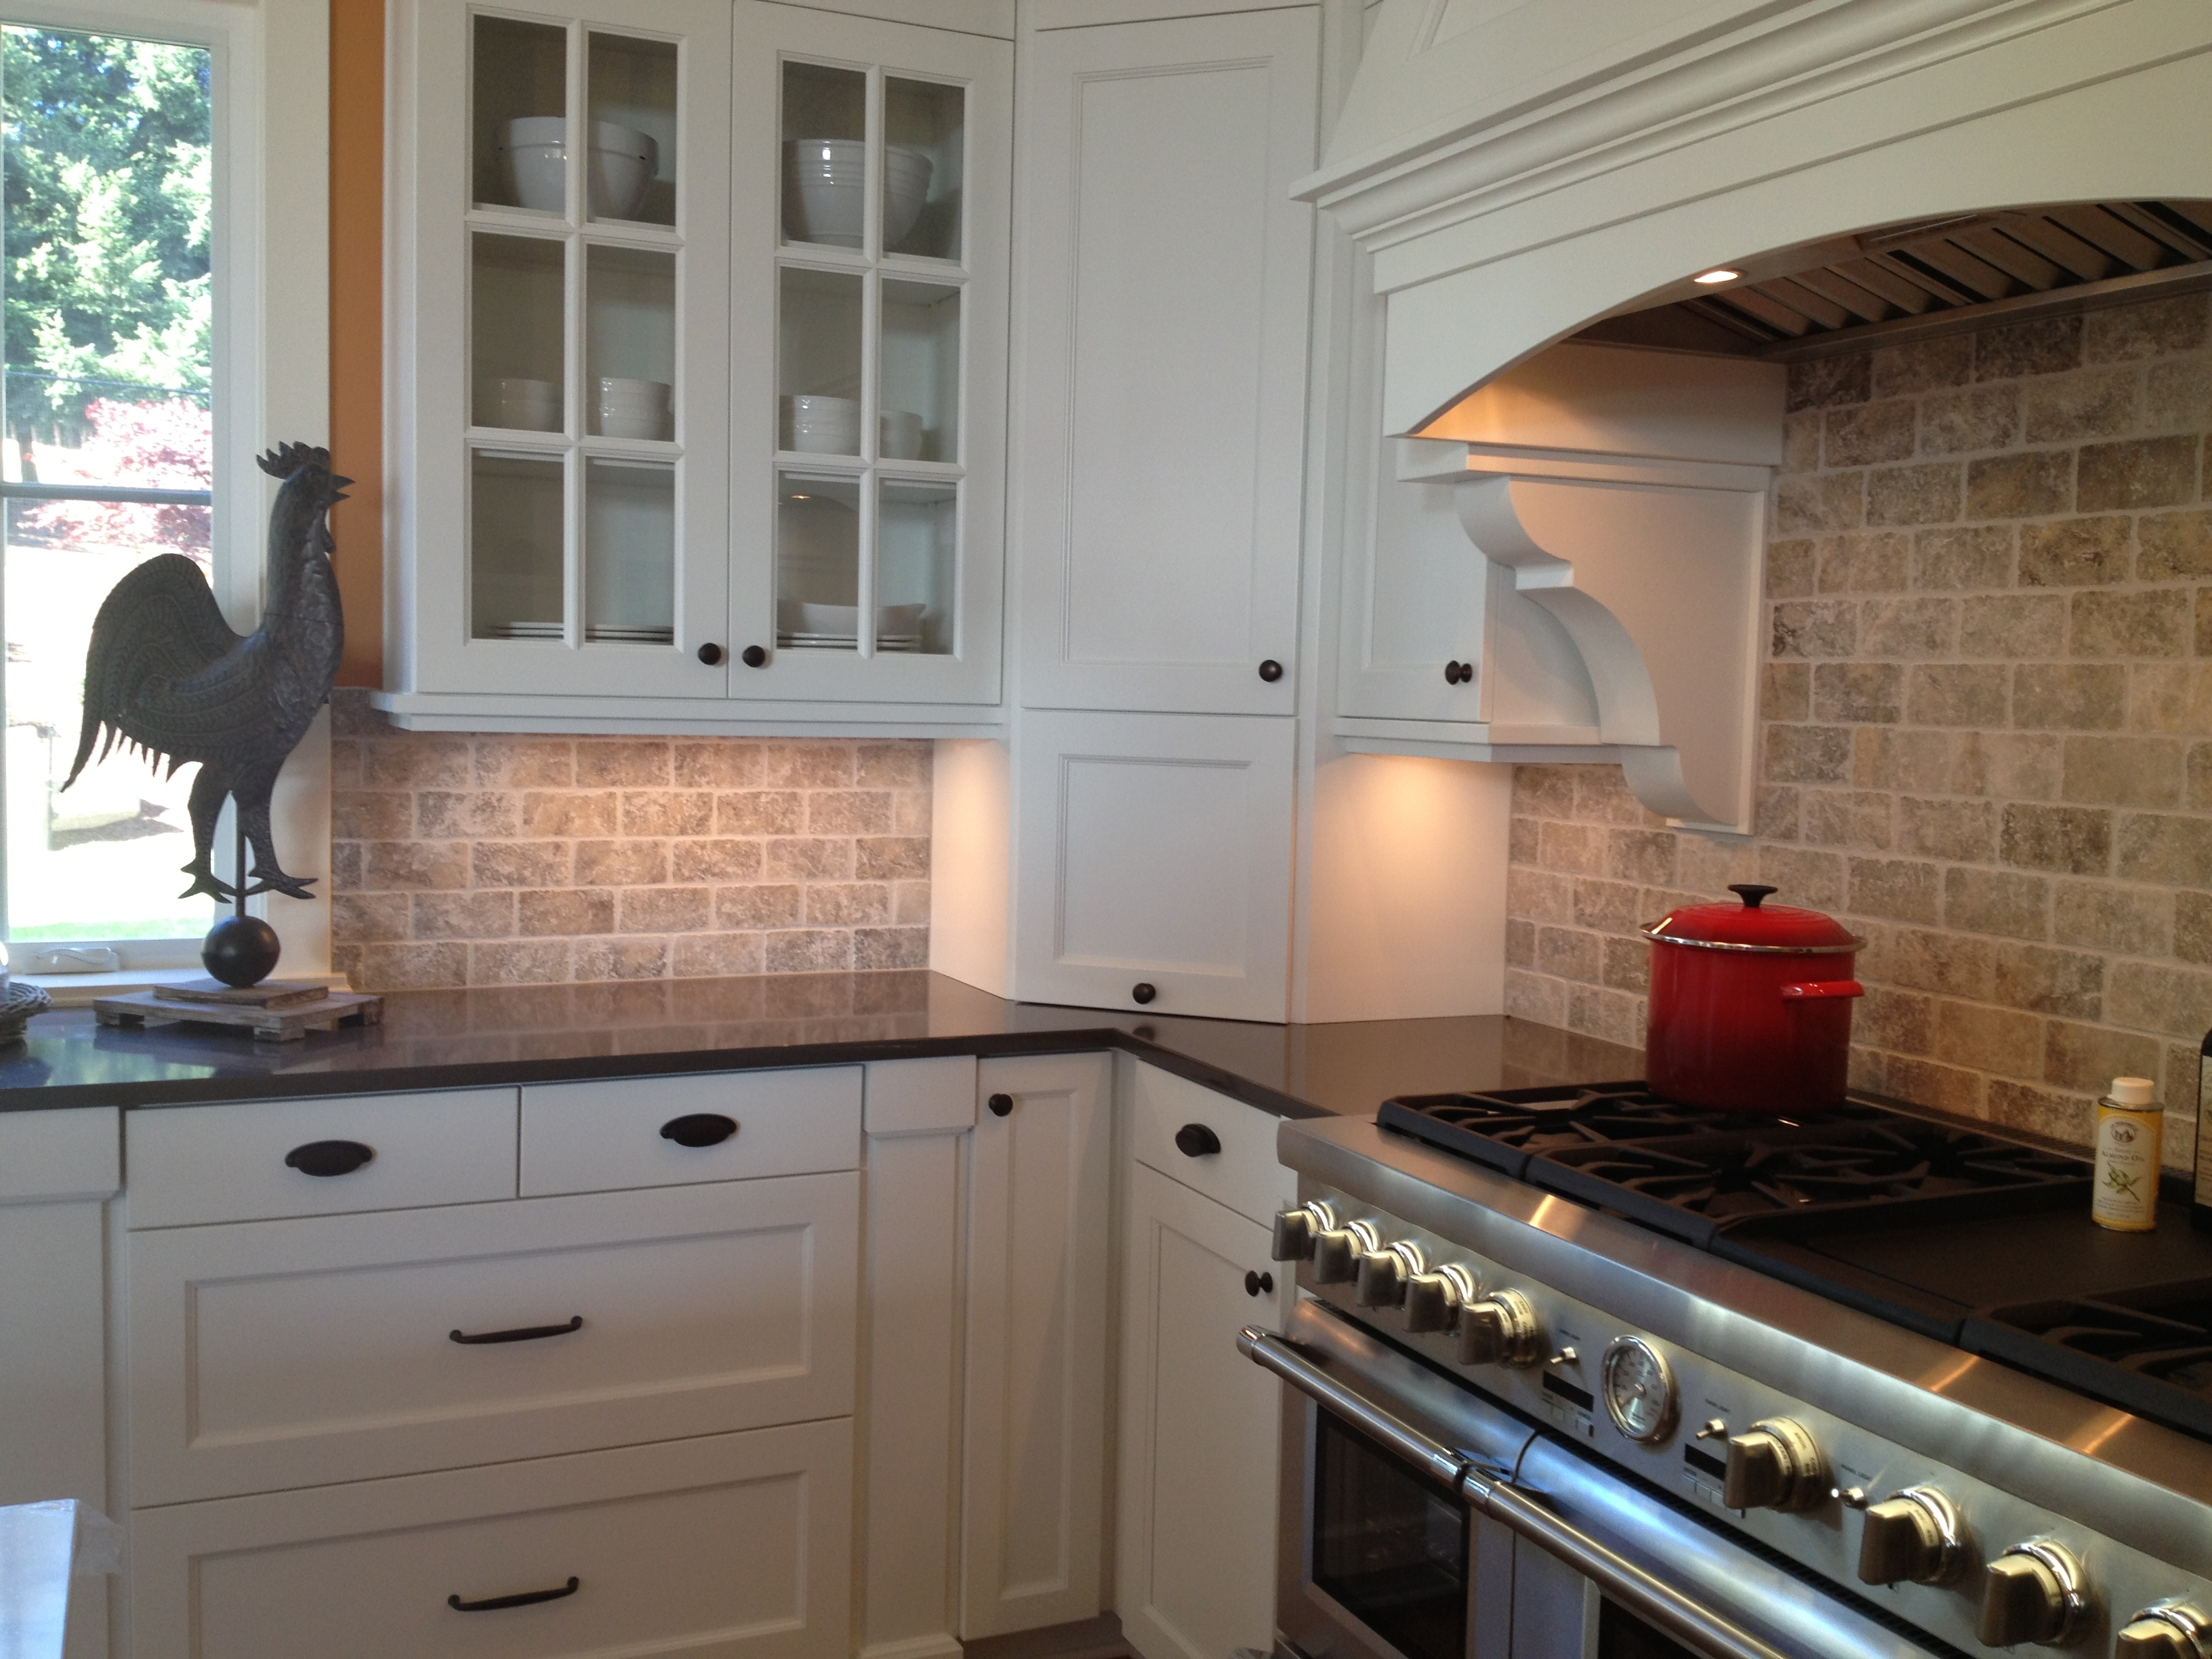 Kitchen Backsplash Ideas White Cabinets Black Countertops